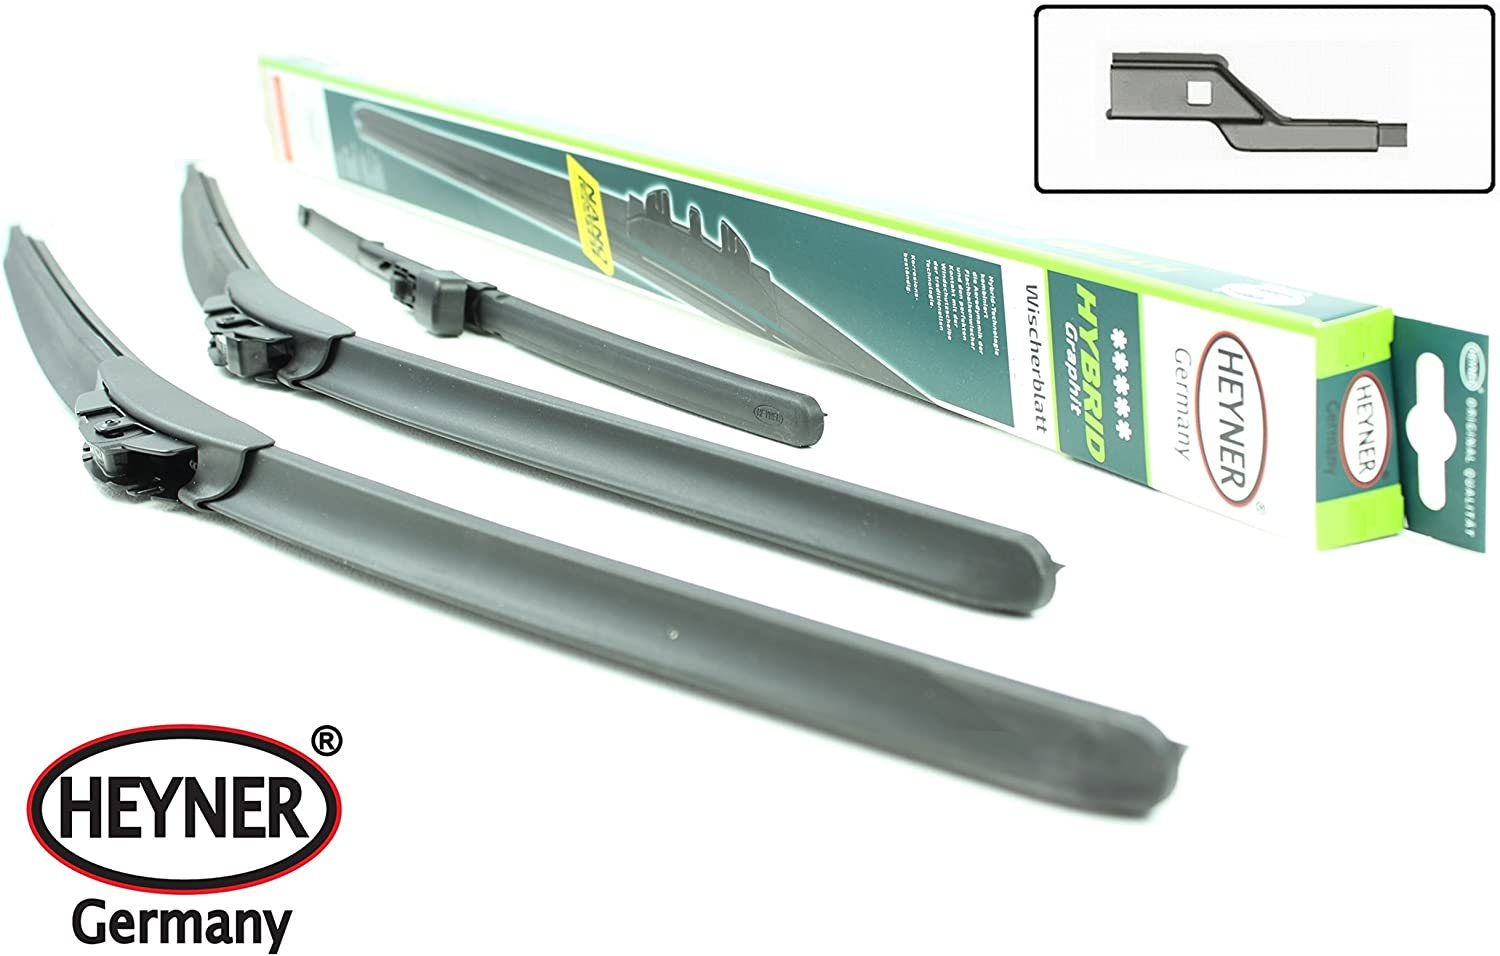 Skda Fabia Hatchback Models 2007 To 2013 Heyner Germany Aeroflat Hybrid Windscreen Wiper Blades 212112 Front Replacement Set HH2121TL12HRF